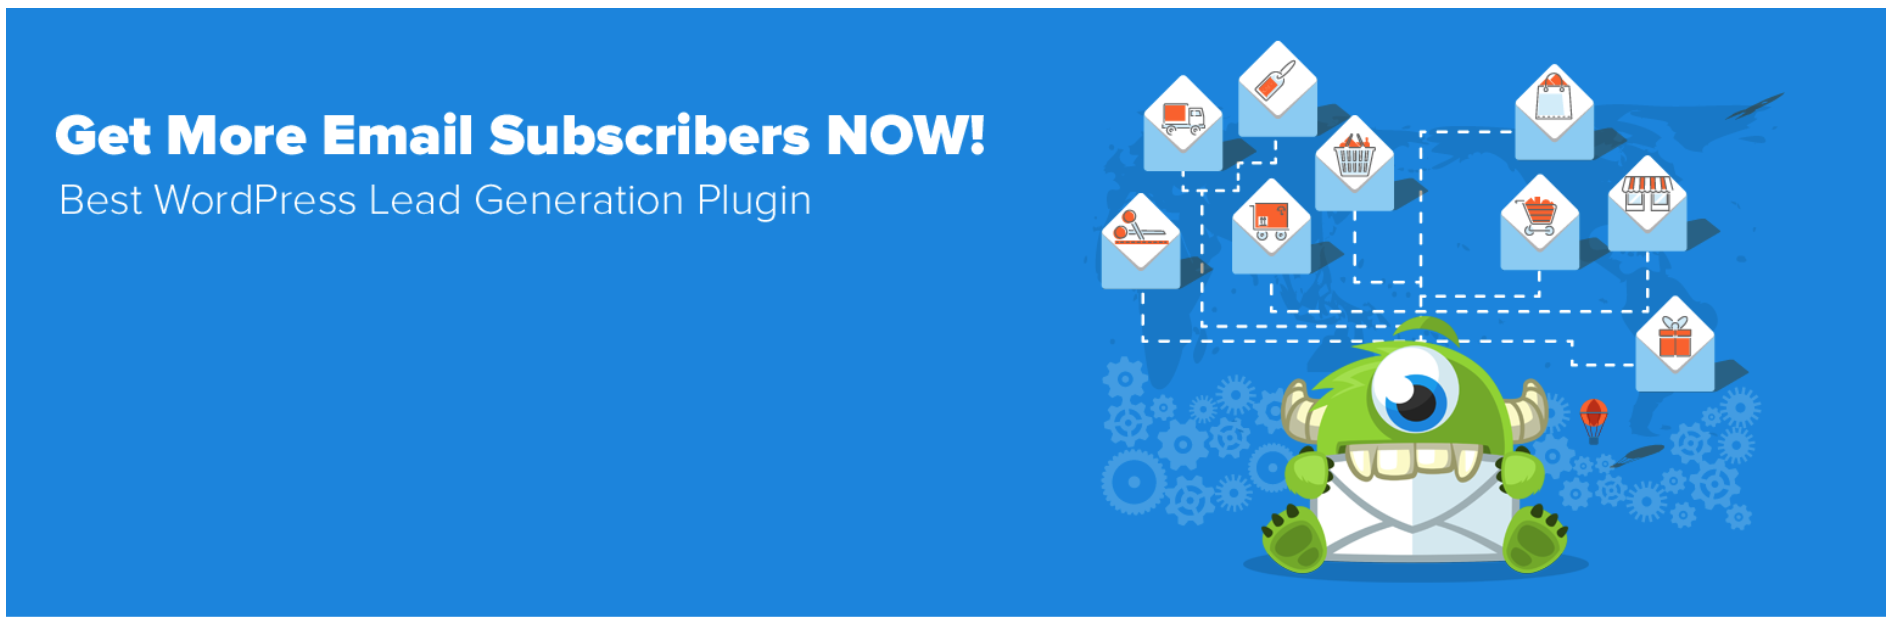 optinmonster-wordpress-plugins-to-boost-email-subscribers